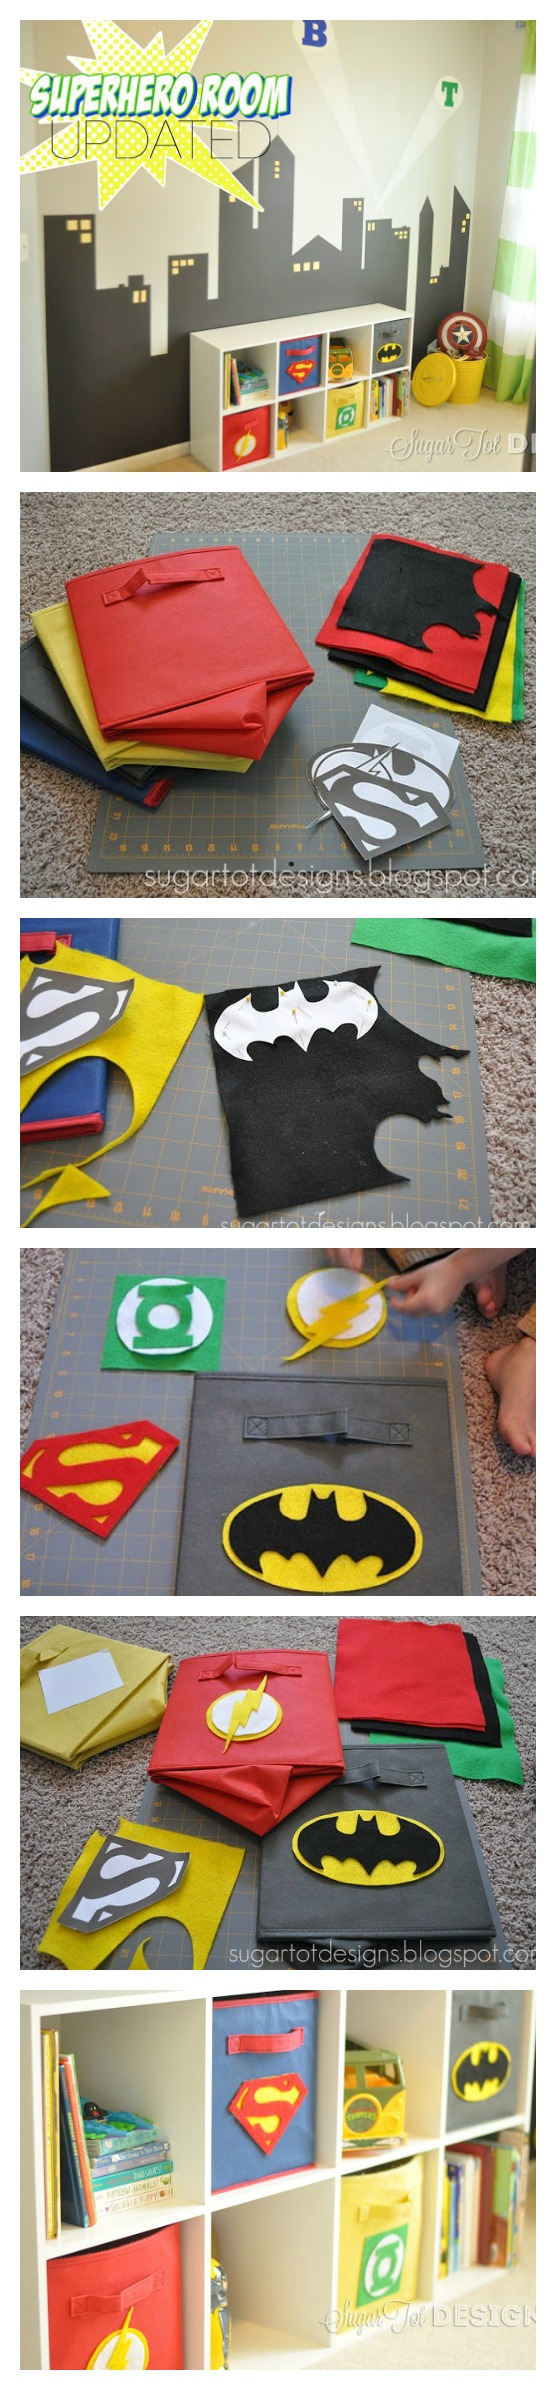 D co chambre enfant ado th me super h ros diy d co chambre enfant superhero boys room - Deco chambre super heros ...